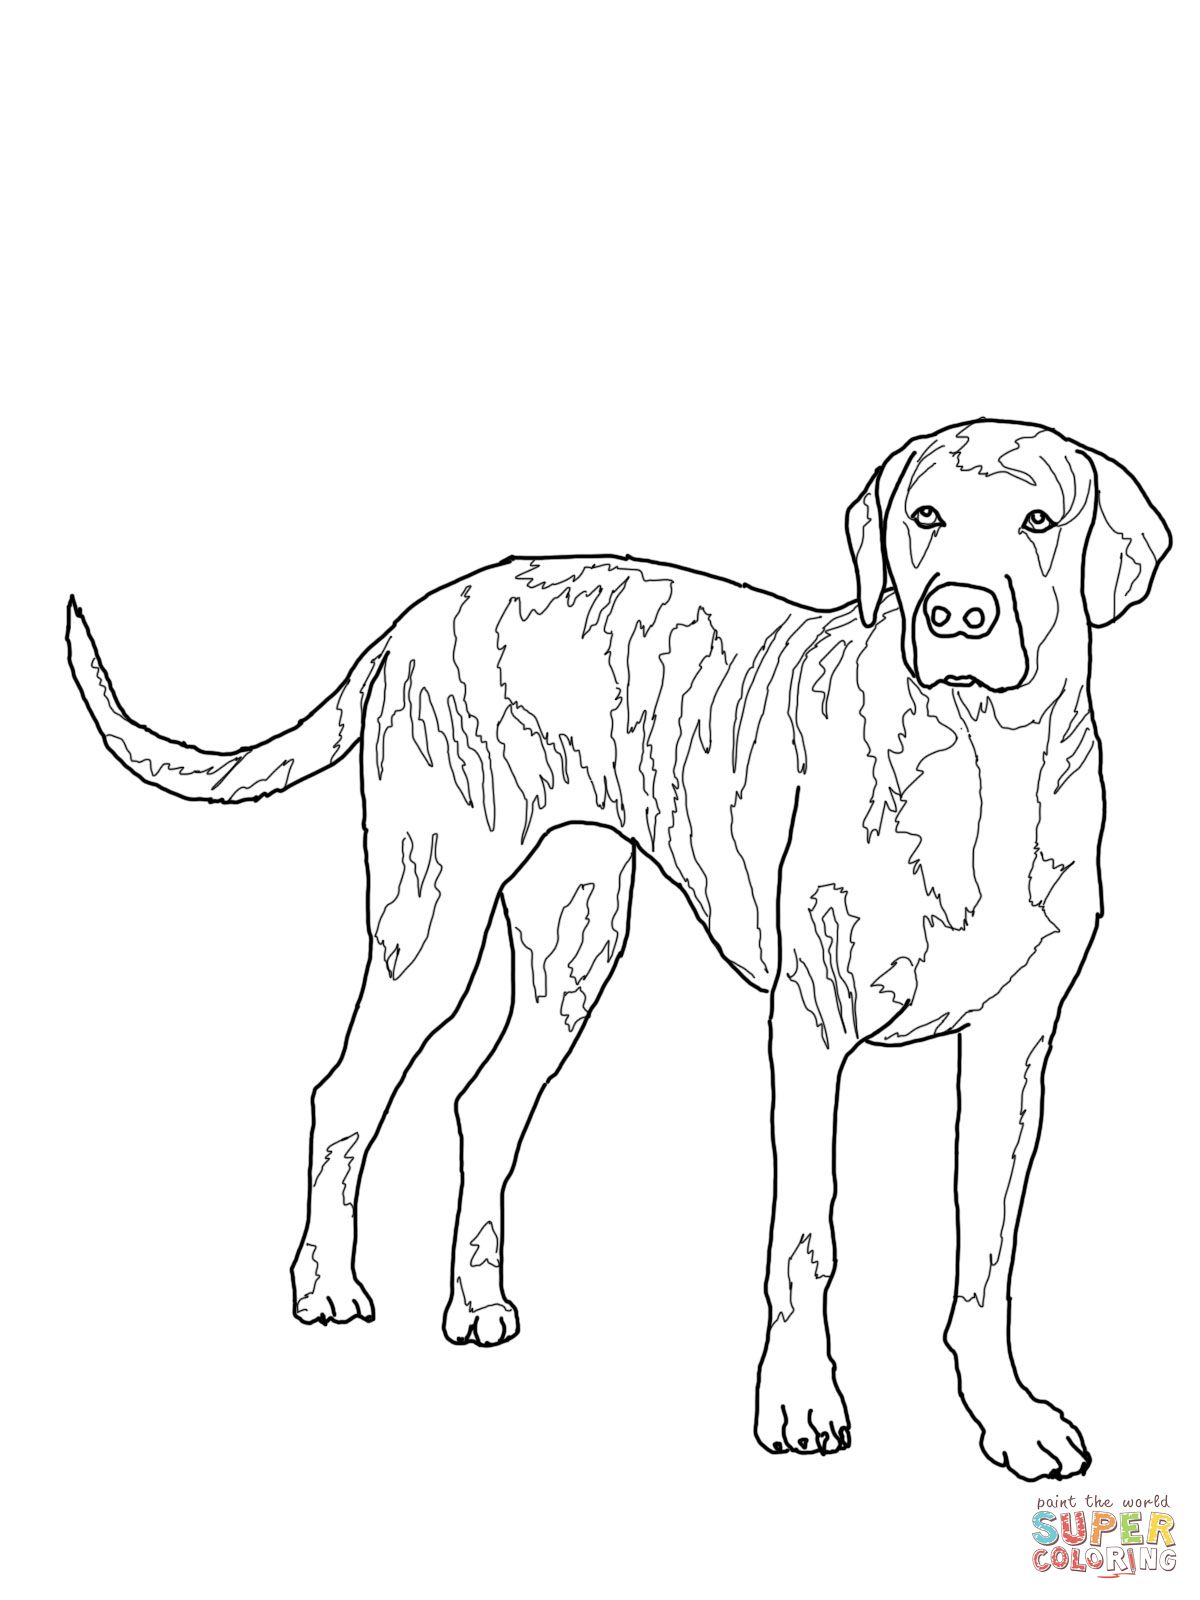 Plott Hound Outline Plott Hound American Foxhound Beagle Colors